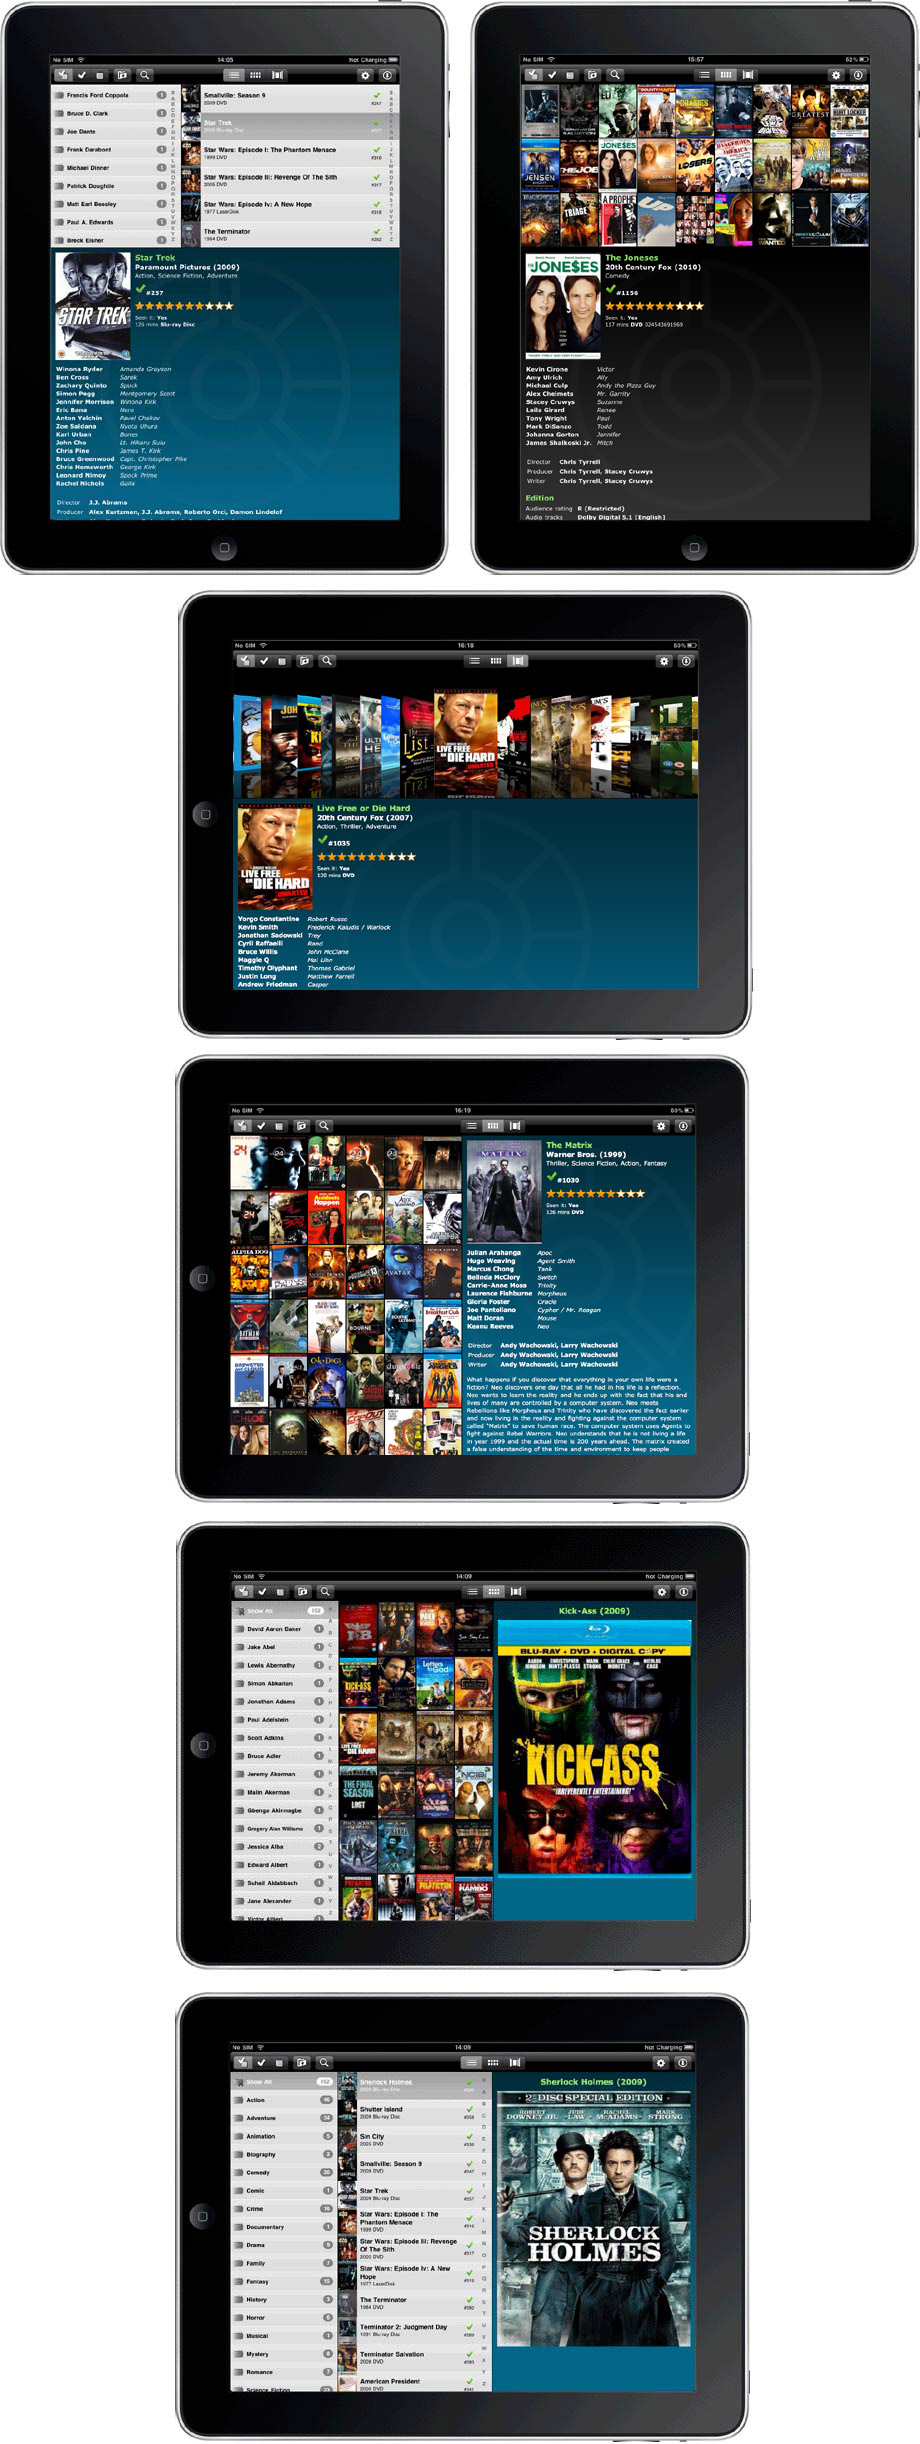 Preview: Collectorz iPad app